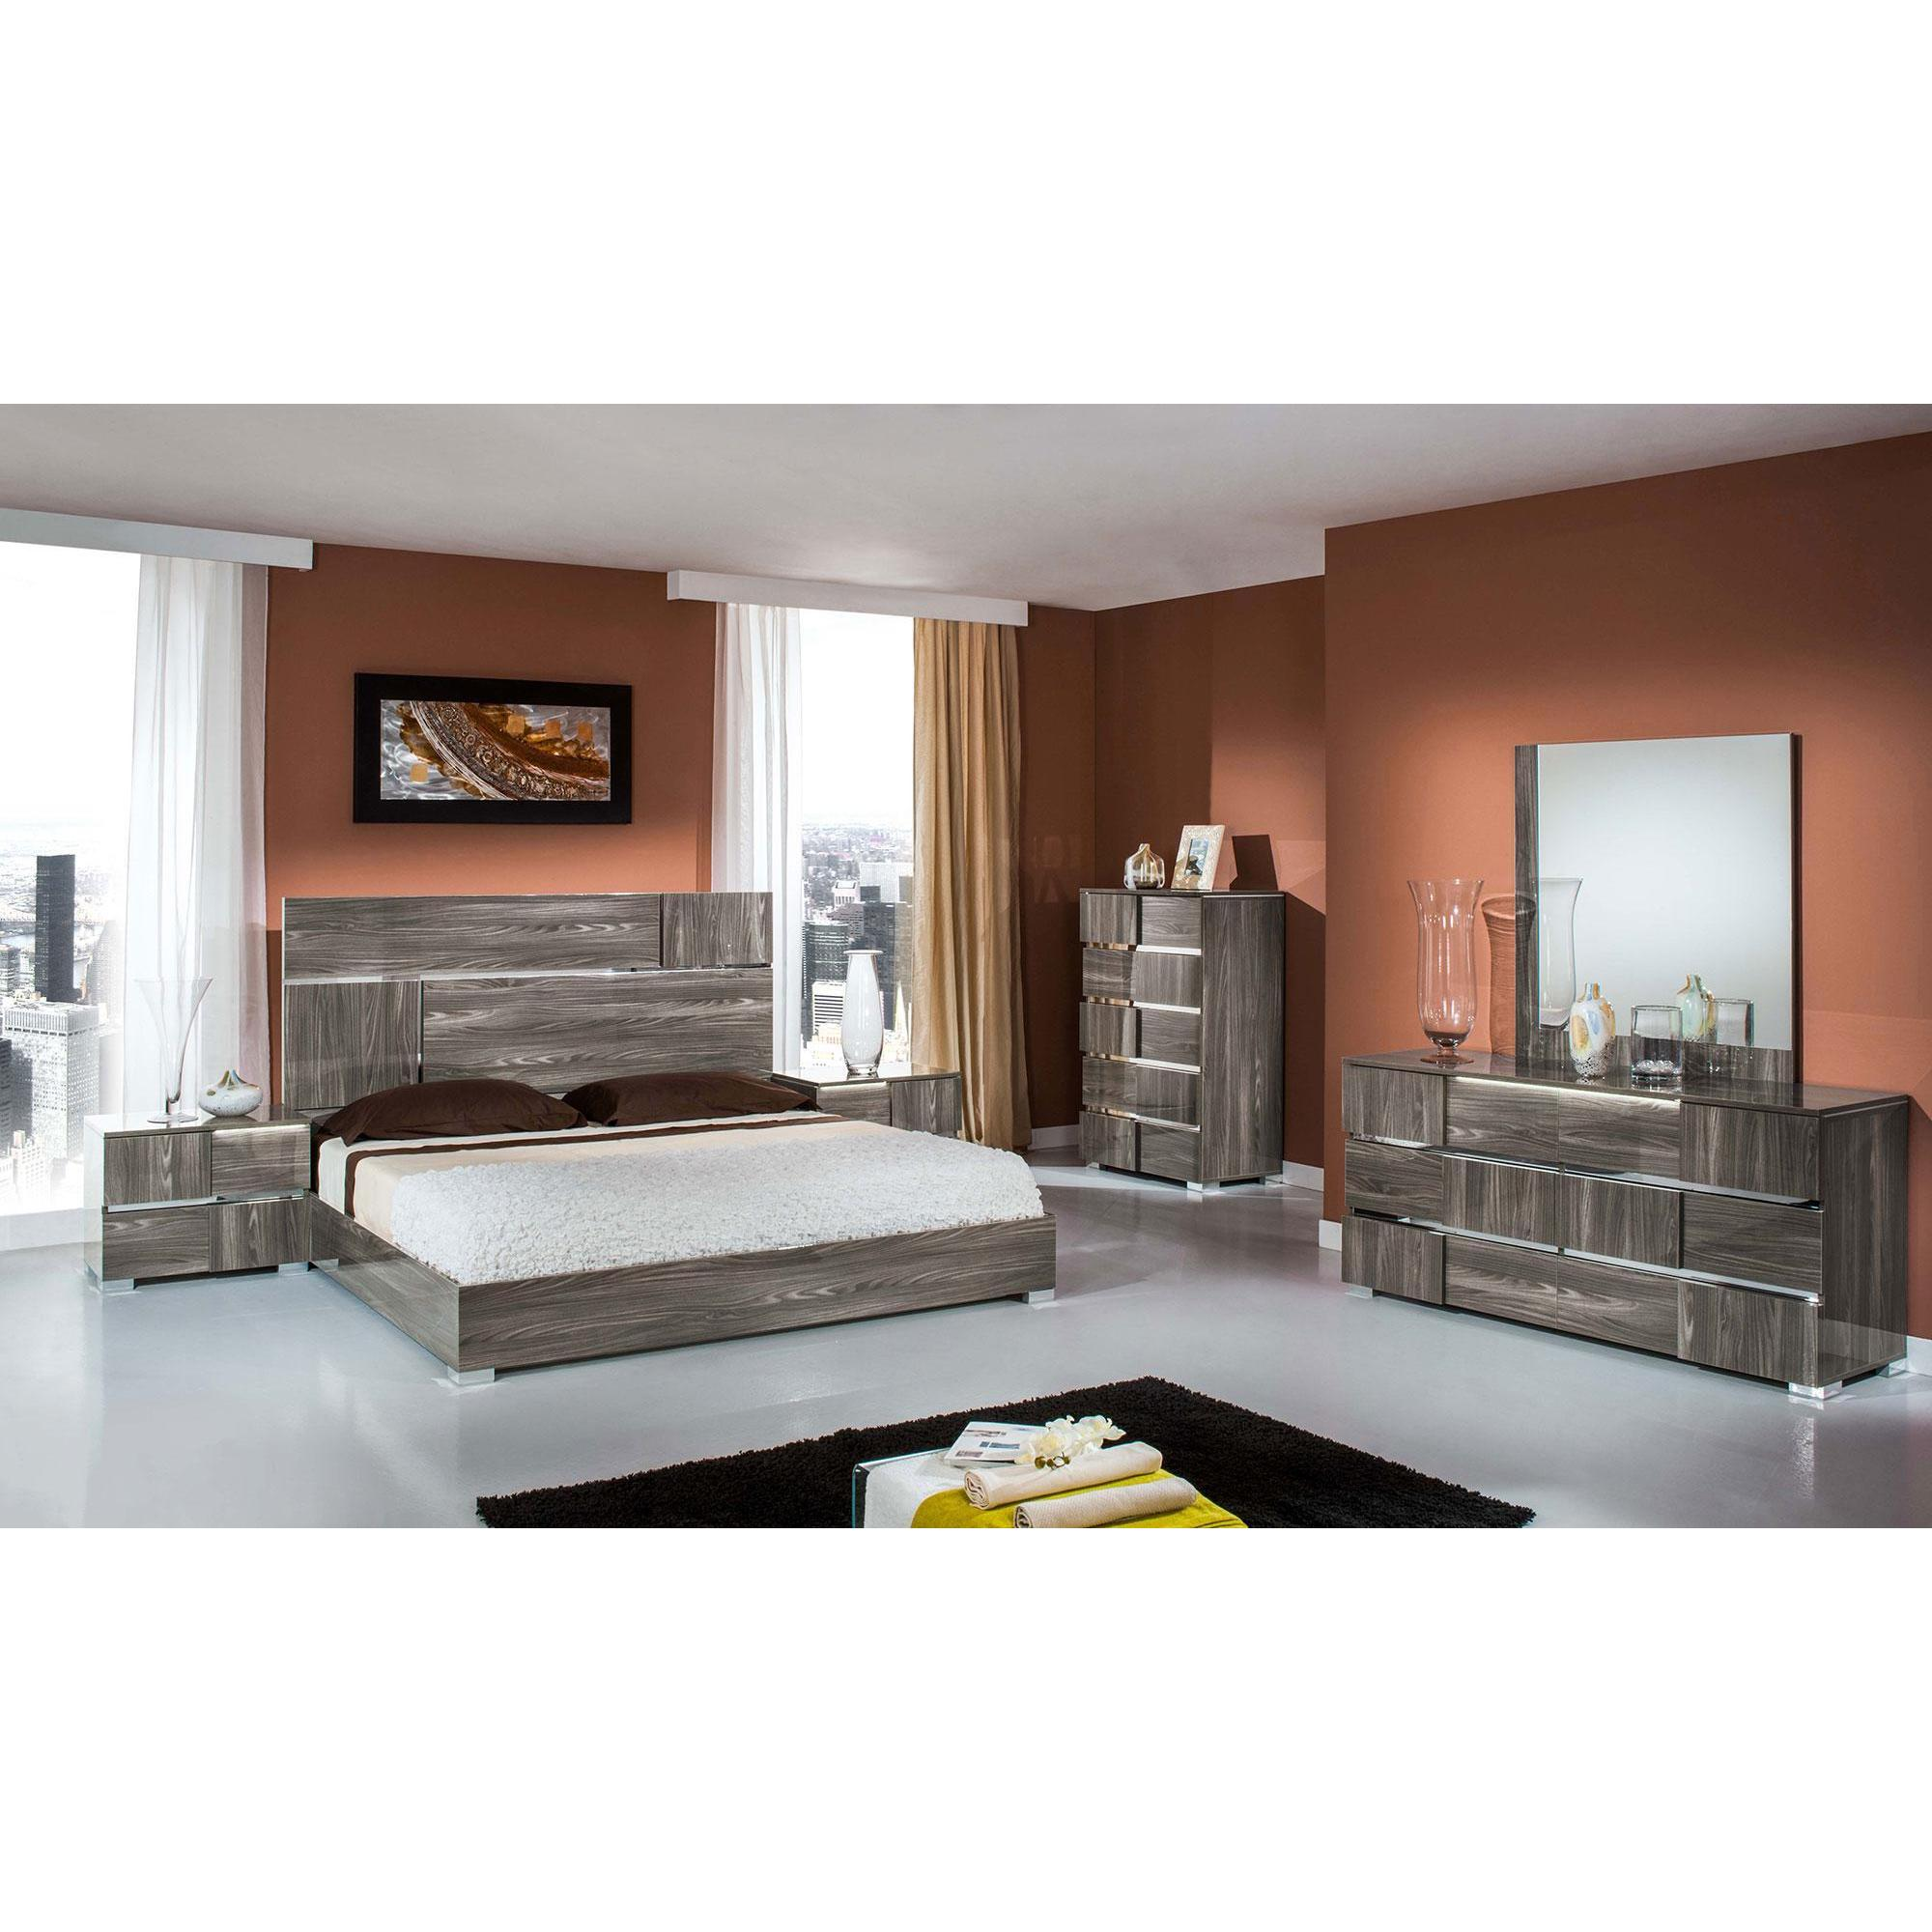 Grey Lacquer Bedroom Set Overstock Shopping Great Deals On Beds